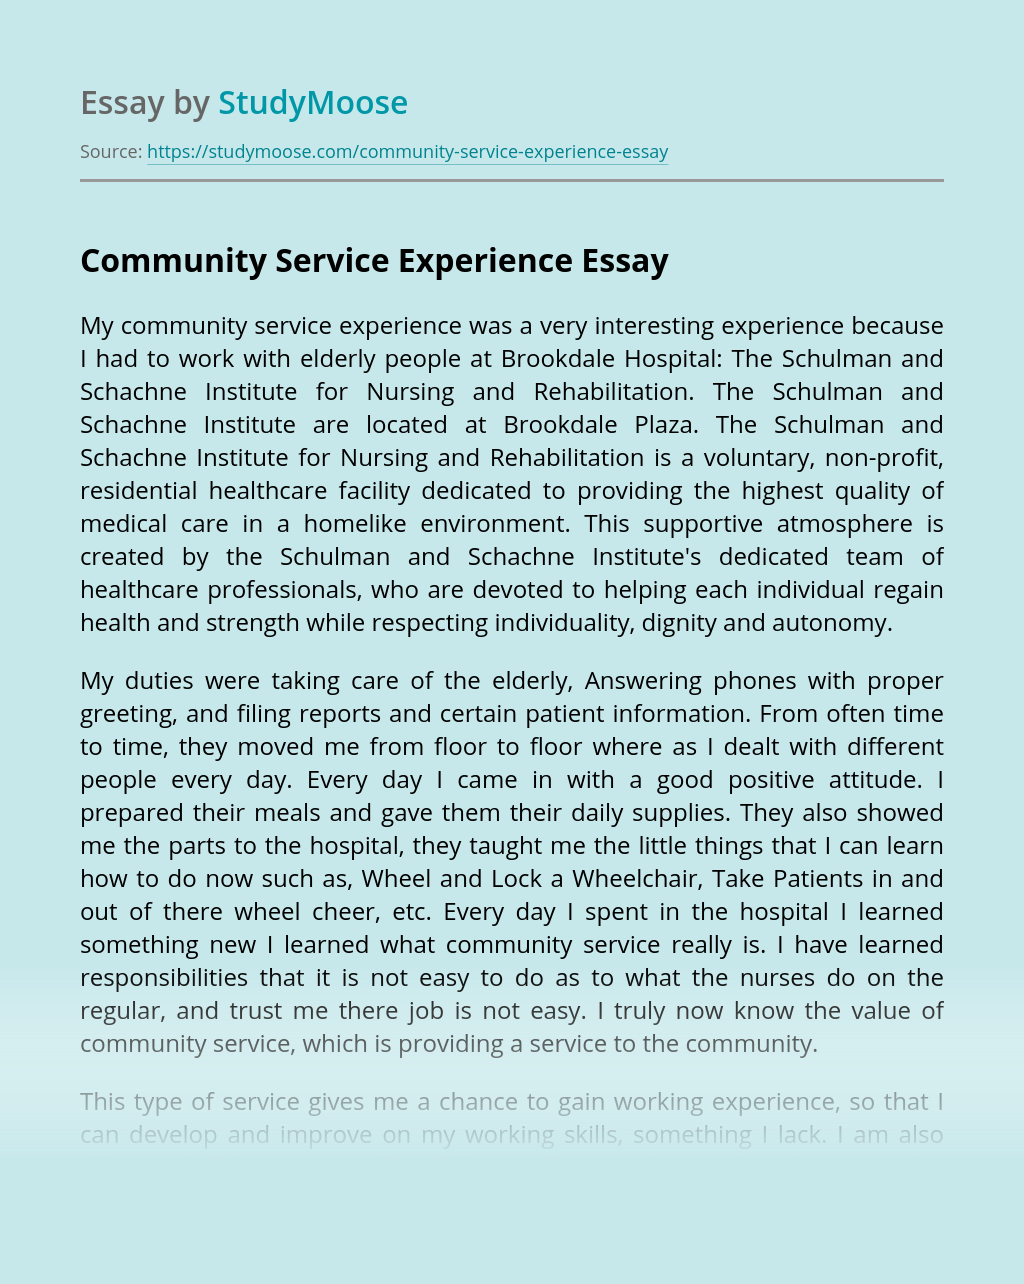 Community Service Experience